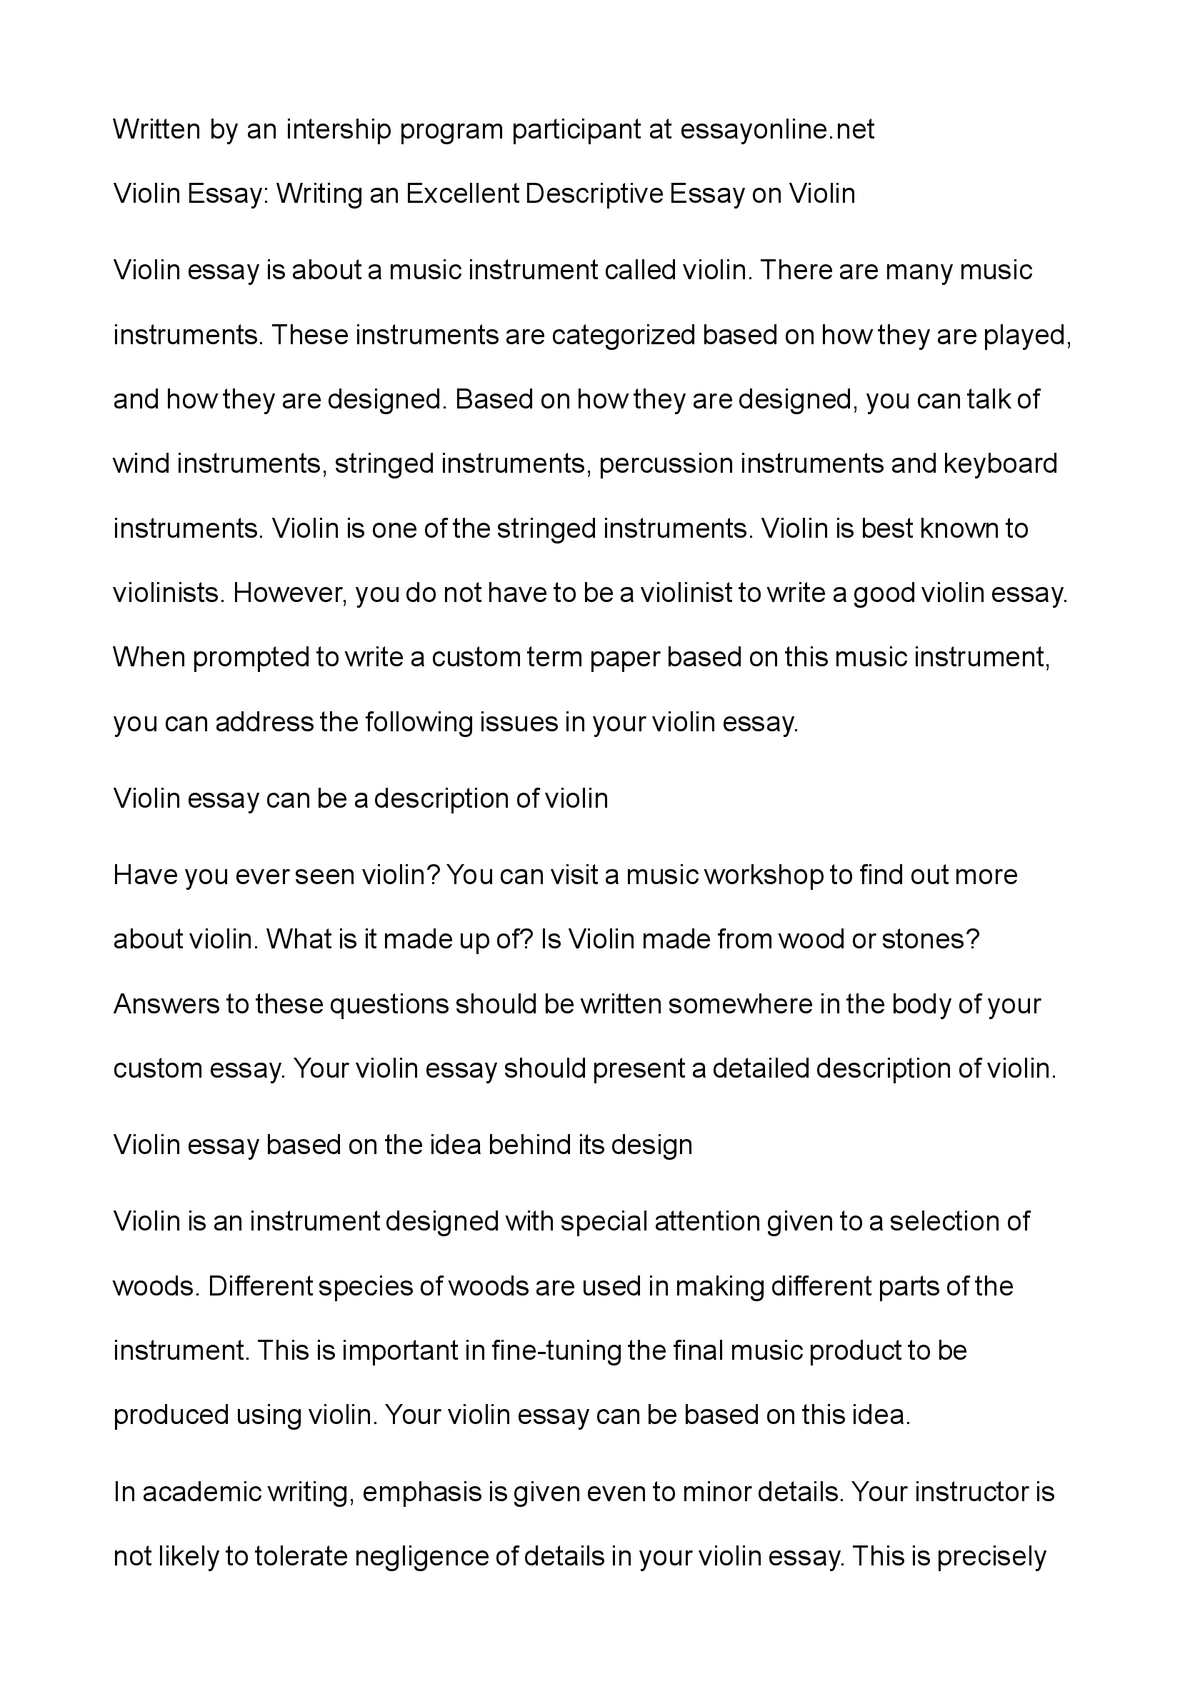 calaméo violin essay writing an excellent descriptive essay on calaméo violin essay writing an excellent descriptive essay on violin